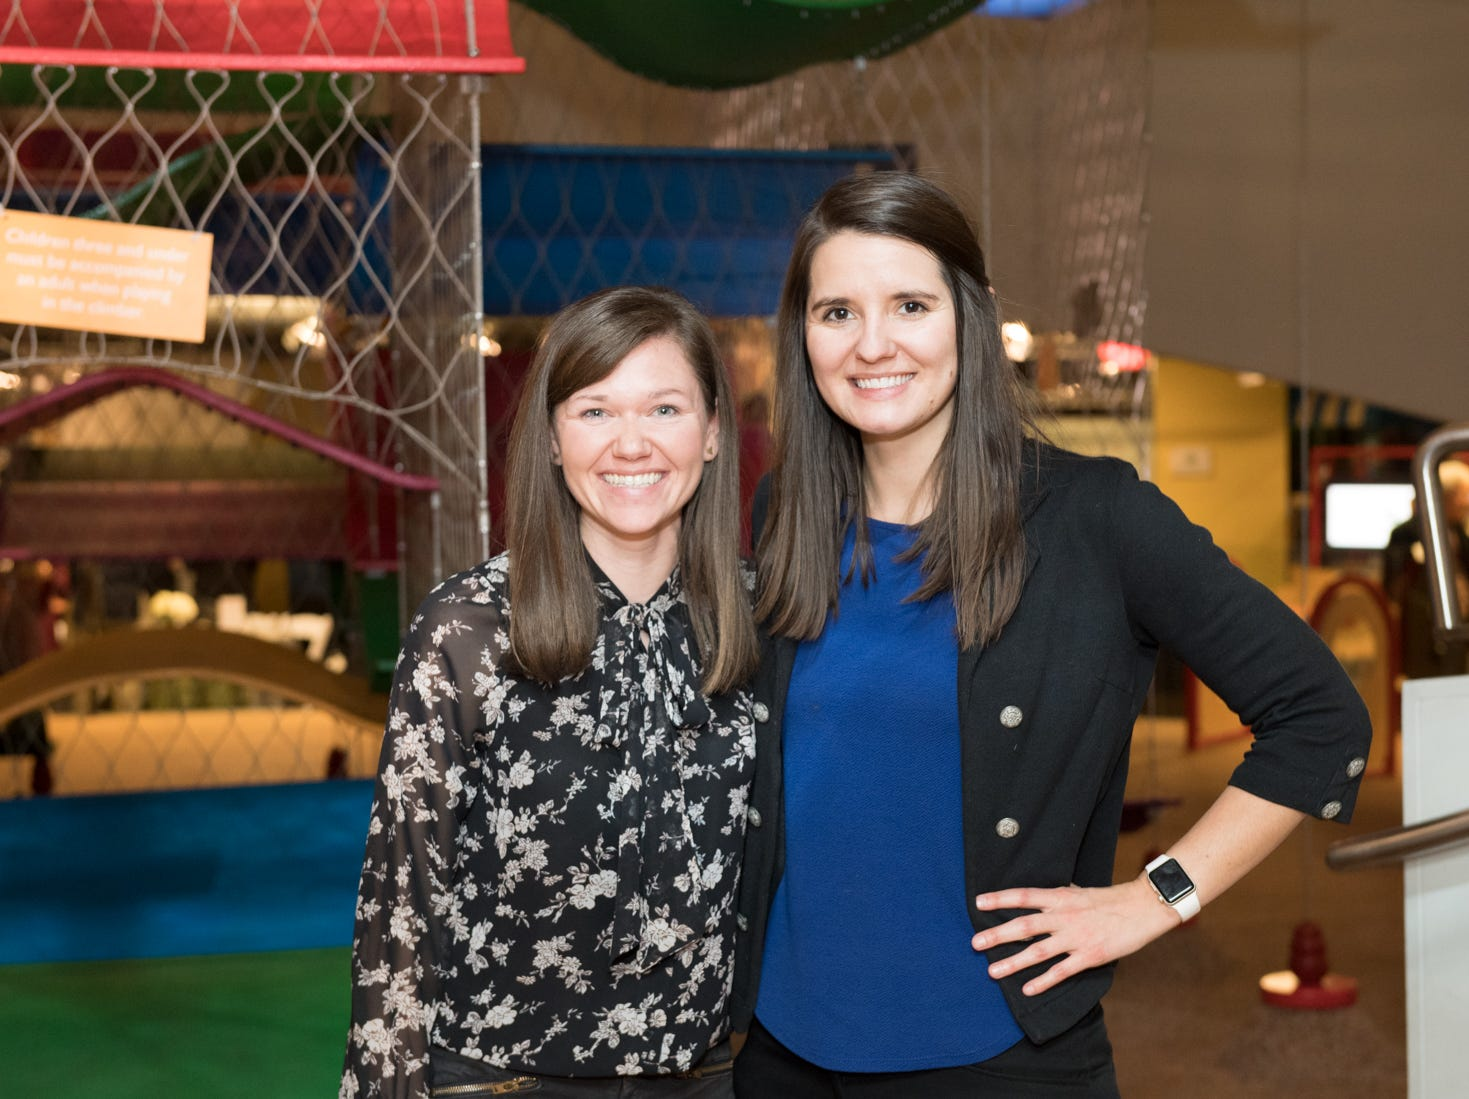 High Spirits Hospitality is excited to partner with The Children's Museum of the Upstate for private events. To kick off this partnership, guests were invited to explore Downtown Greenville's most playful event space. Guests, industry professionals, and media were invited for drinks, hor de'vours, and music. Over 20 vendors set up to give prospective clients a taste of what is in store after-hours at The Children's Museum!